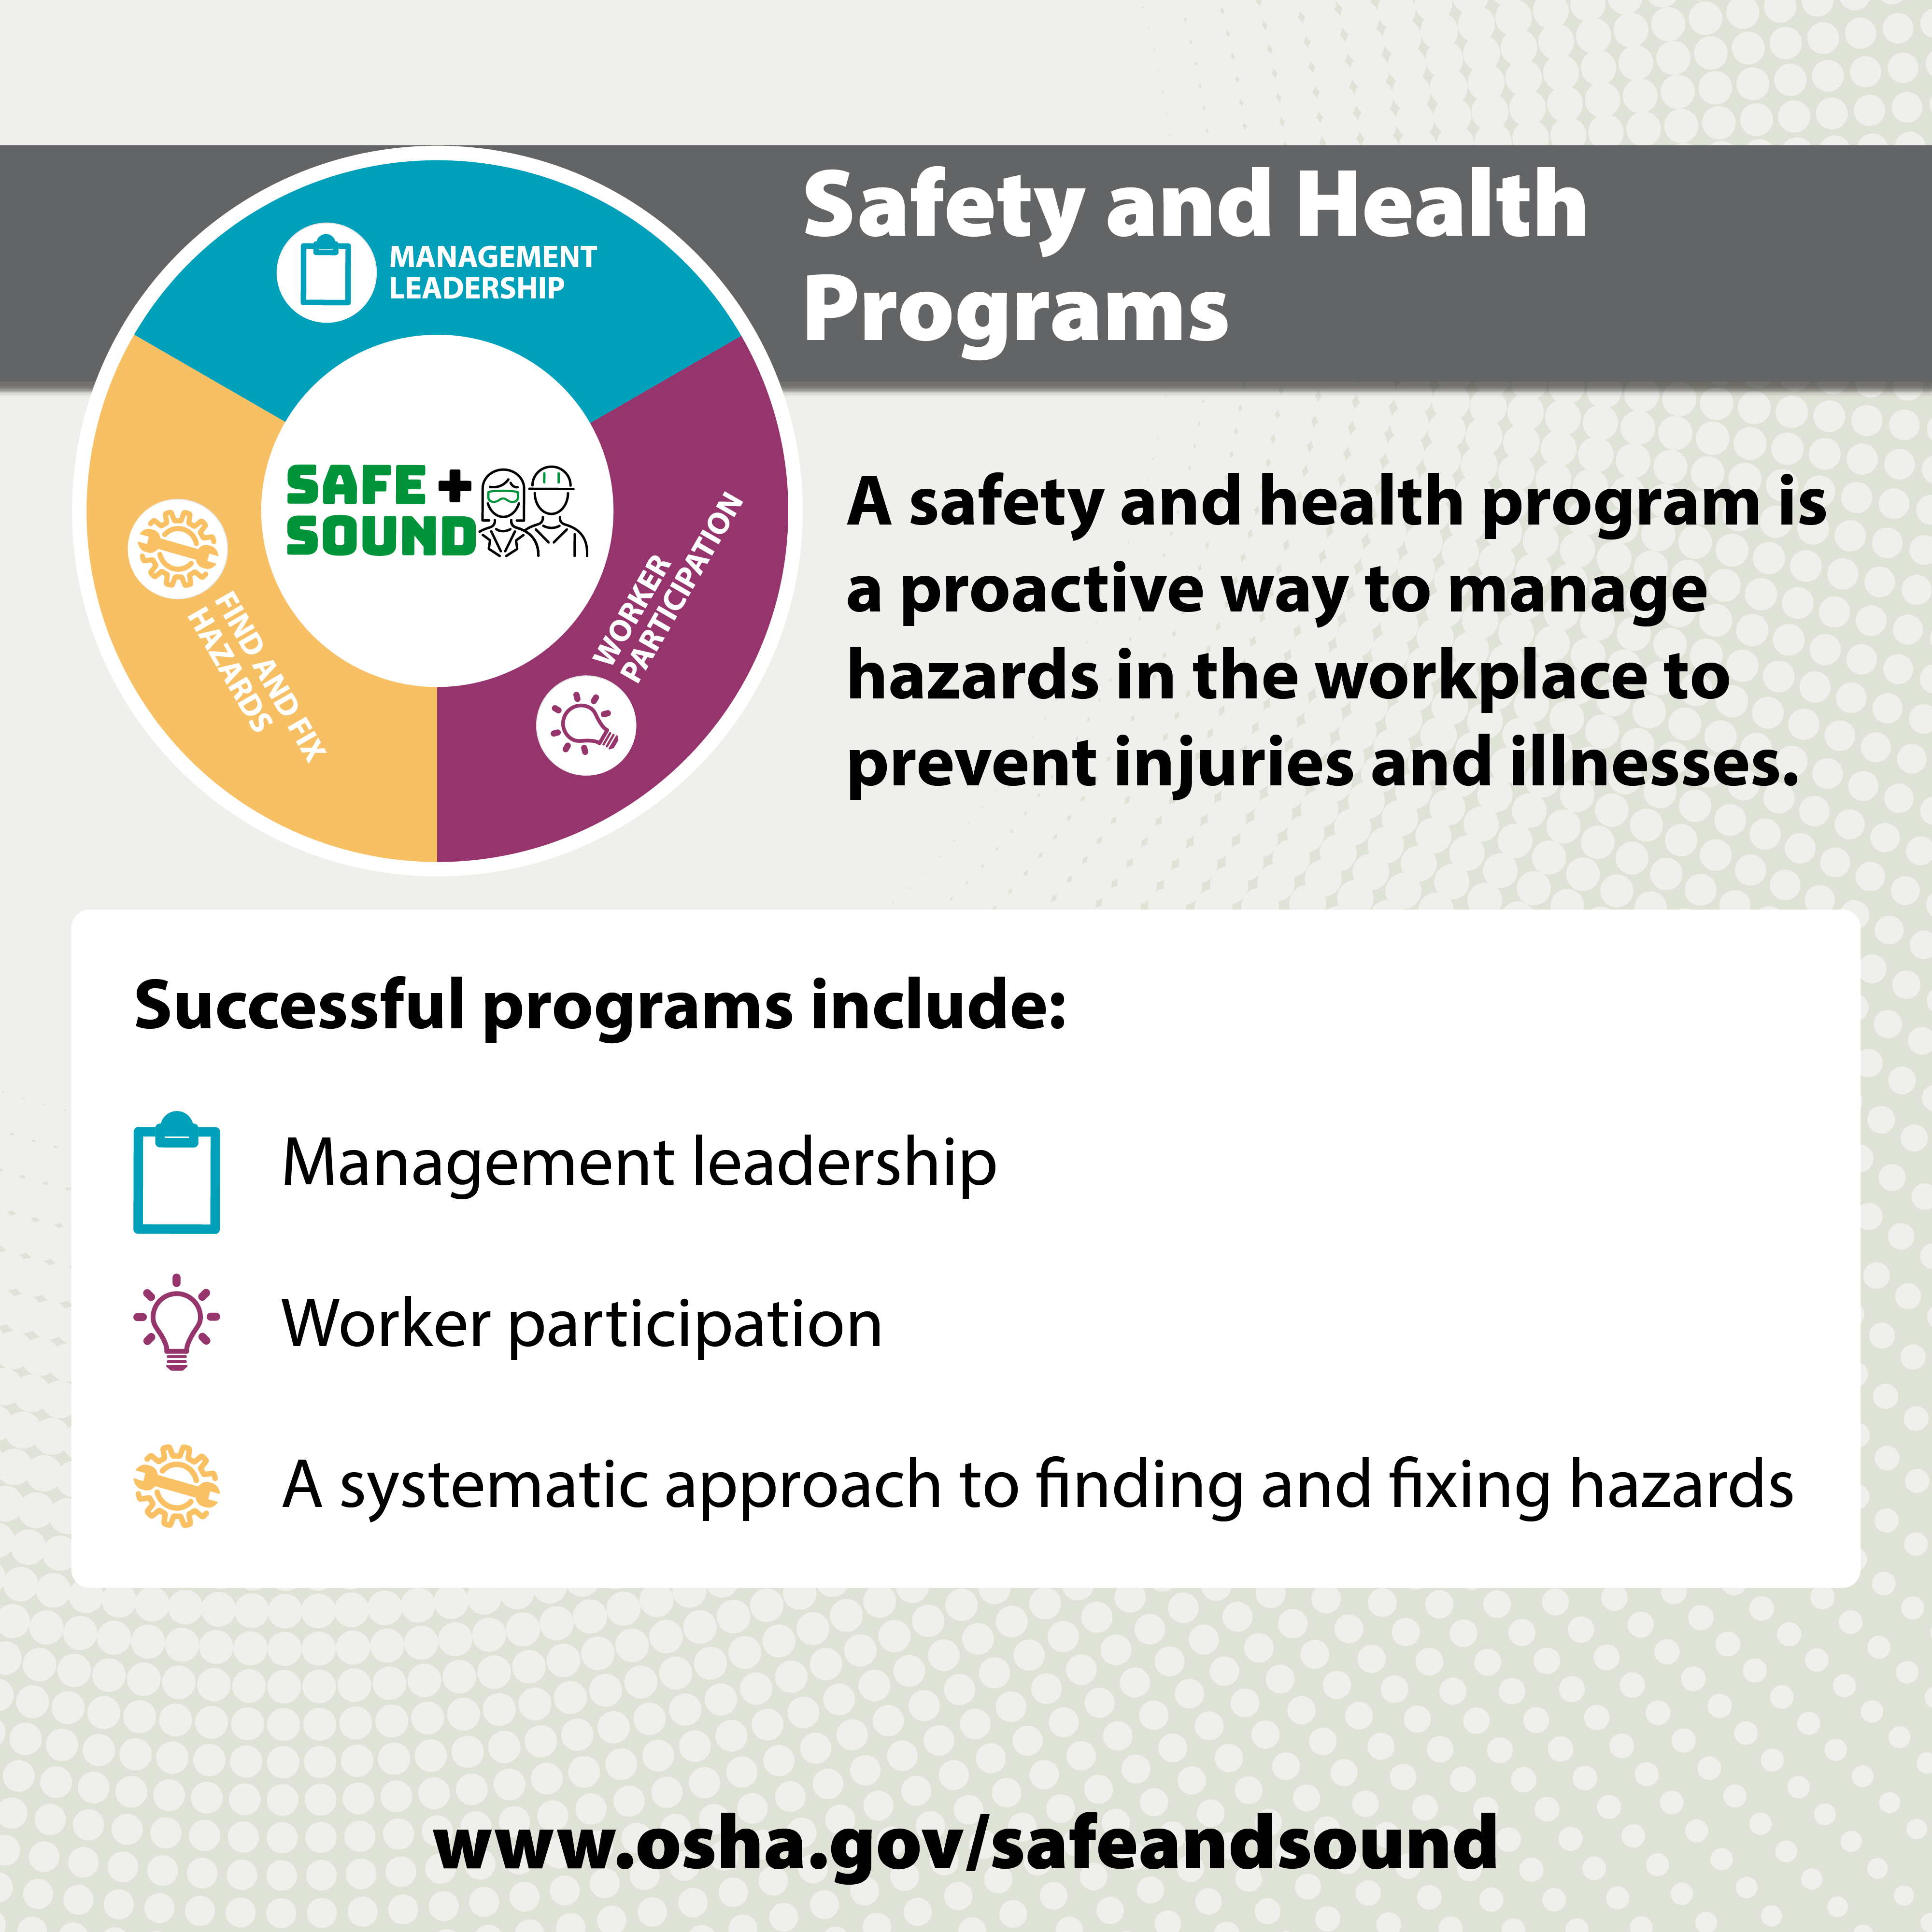 Safety and Health Programs - A safety and health program is a proactive way to manage hazards in the workplace to prevent injuries and illnesses.